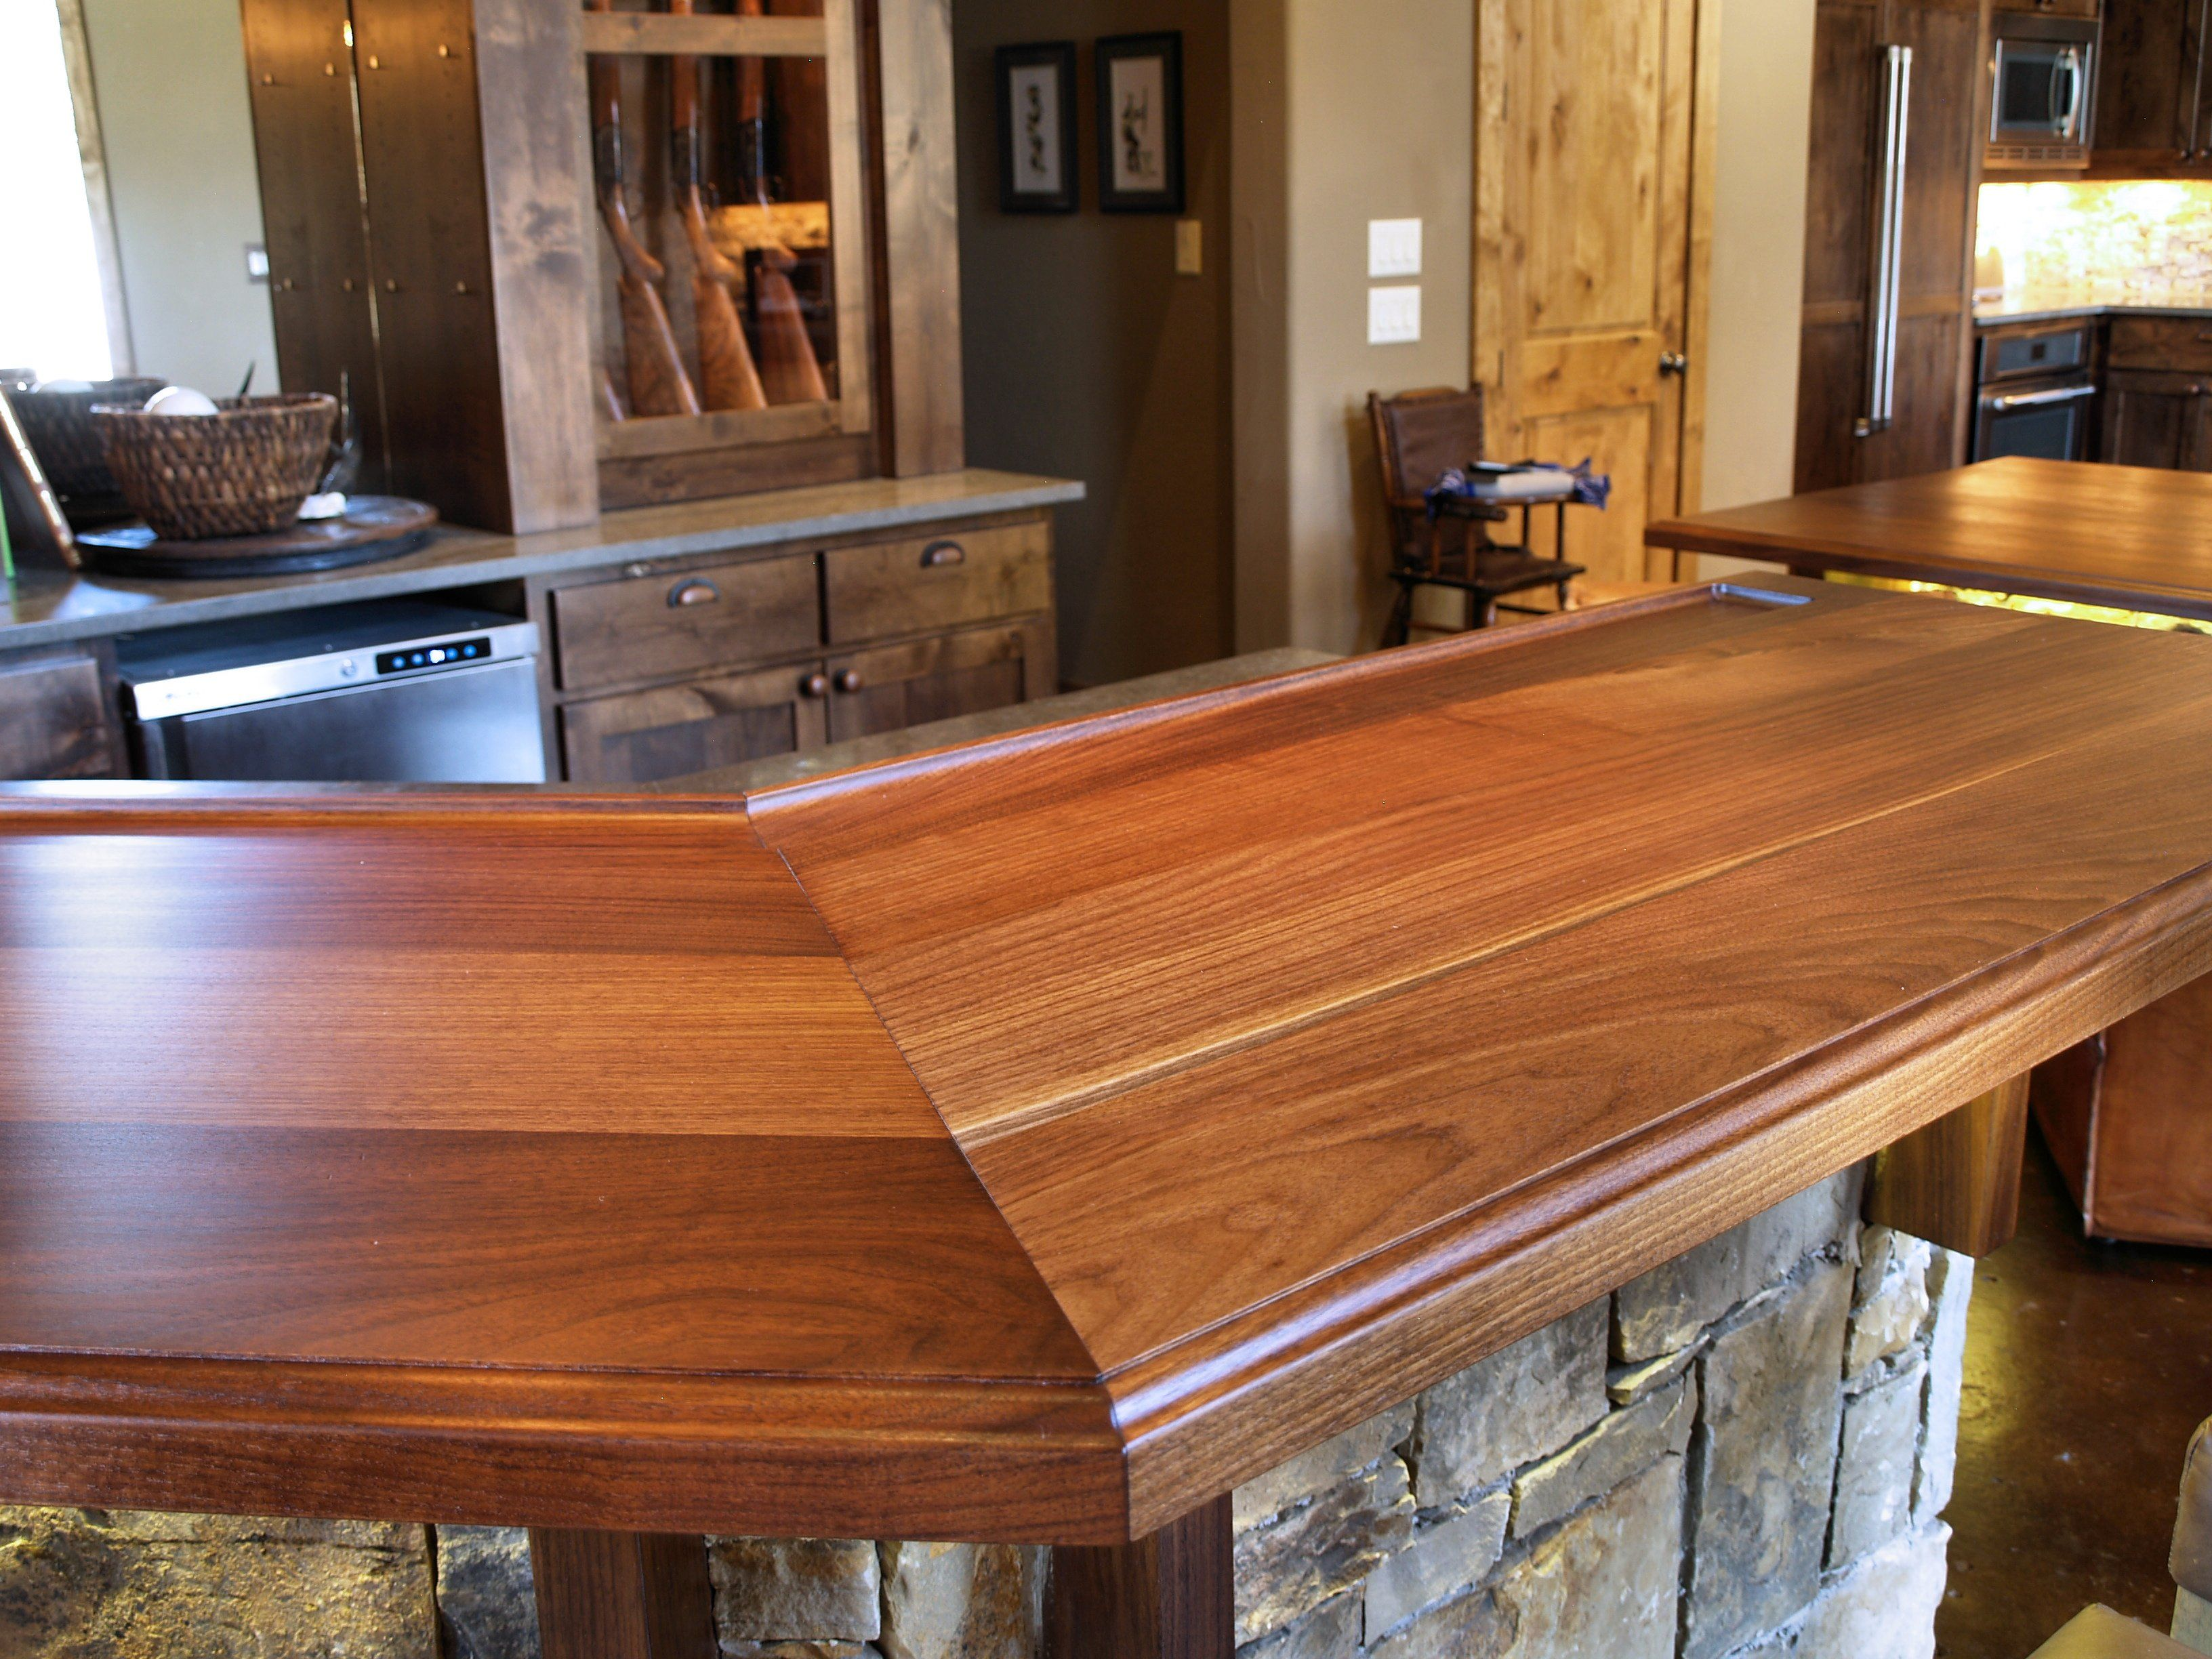 Best Way To Join Wood For Table Top